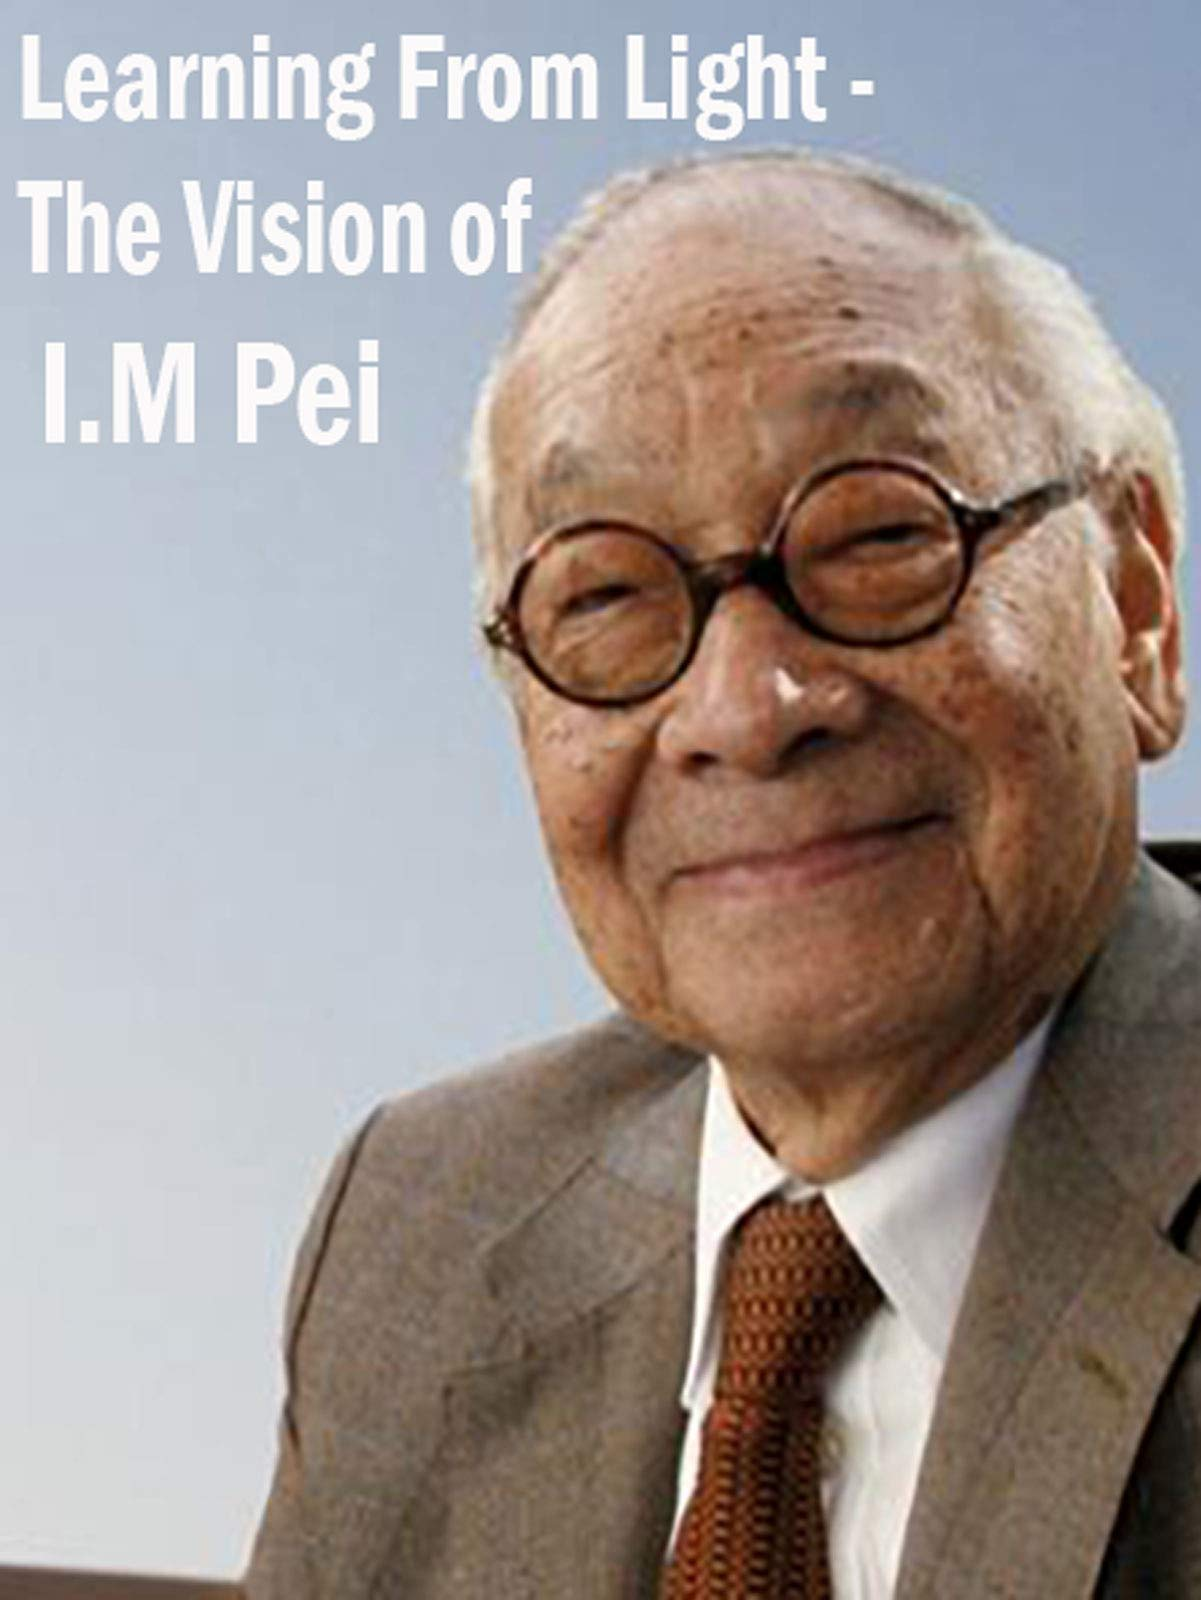 Learning From Light - The Vision of I.M. Pei on Amazon Prime Video UK